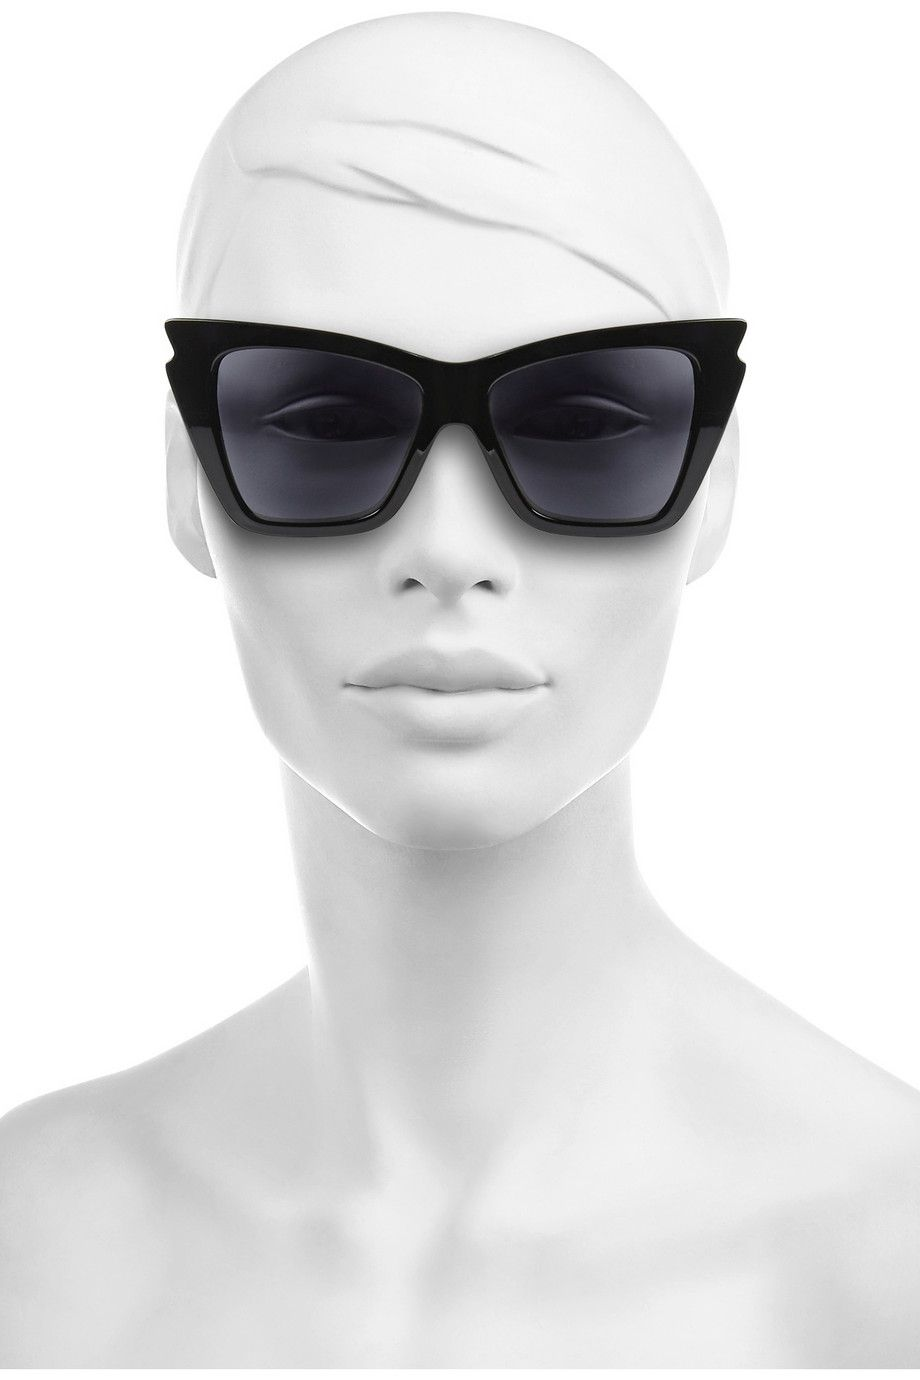 LE SPECS Rapture cat eye acetate sunglasses $55 - These are a must ...